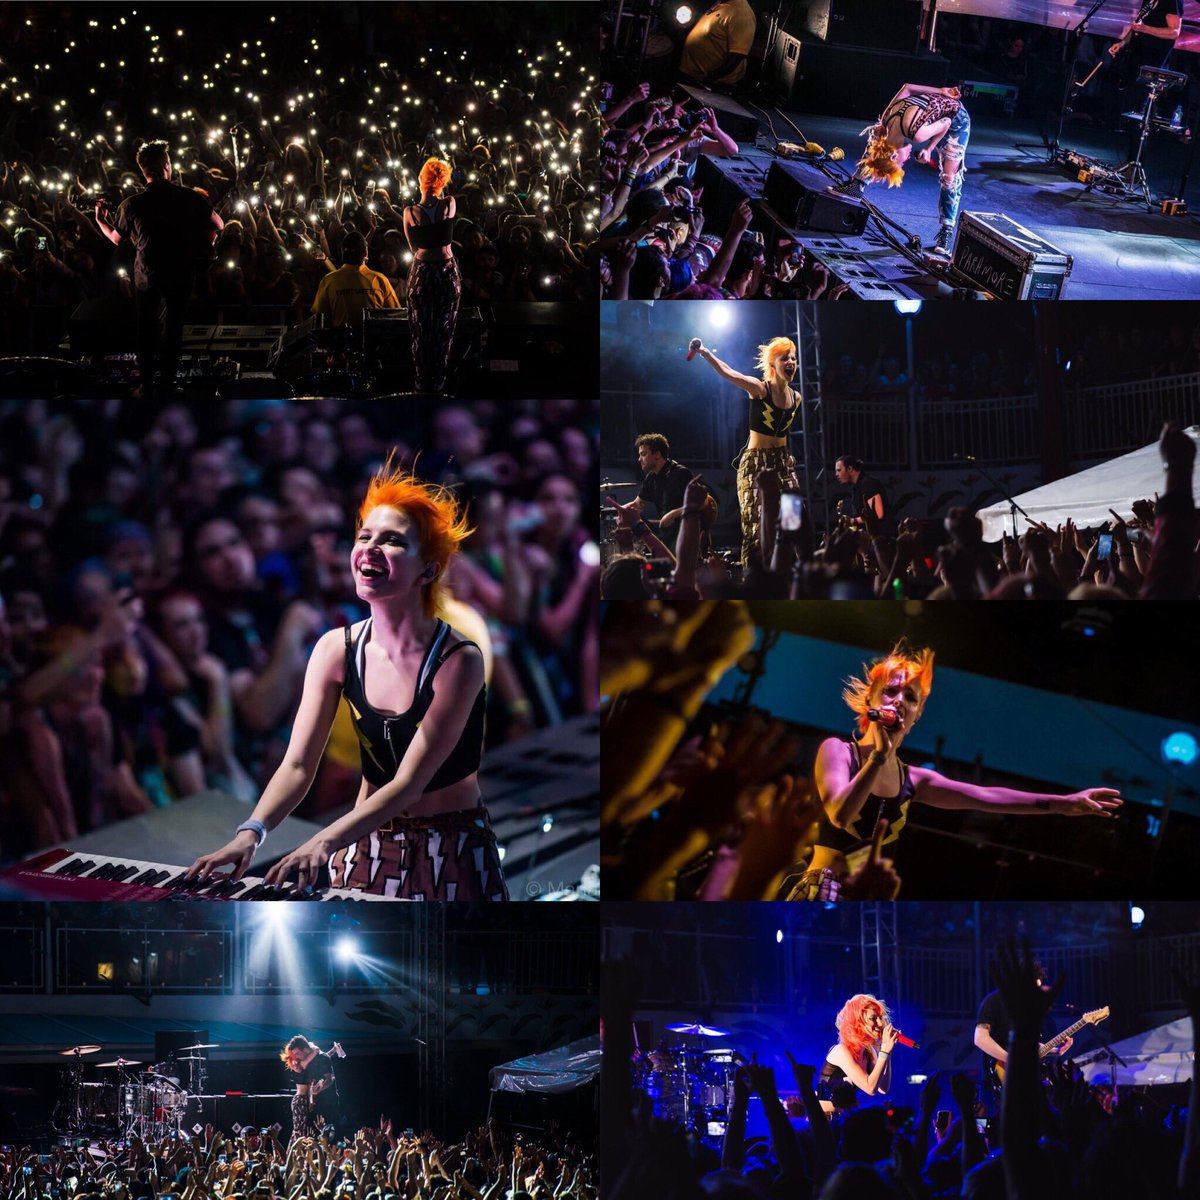 #tbt to #Parahoy! Here's a few favs captured by YOU courtesy of @maria_de_vera @natmontaner @MsMoonlightArts! https://t.co/smIsDxR0uu